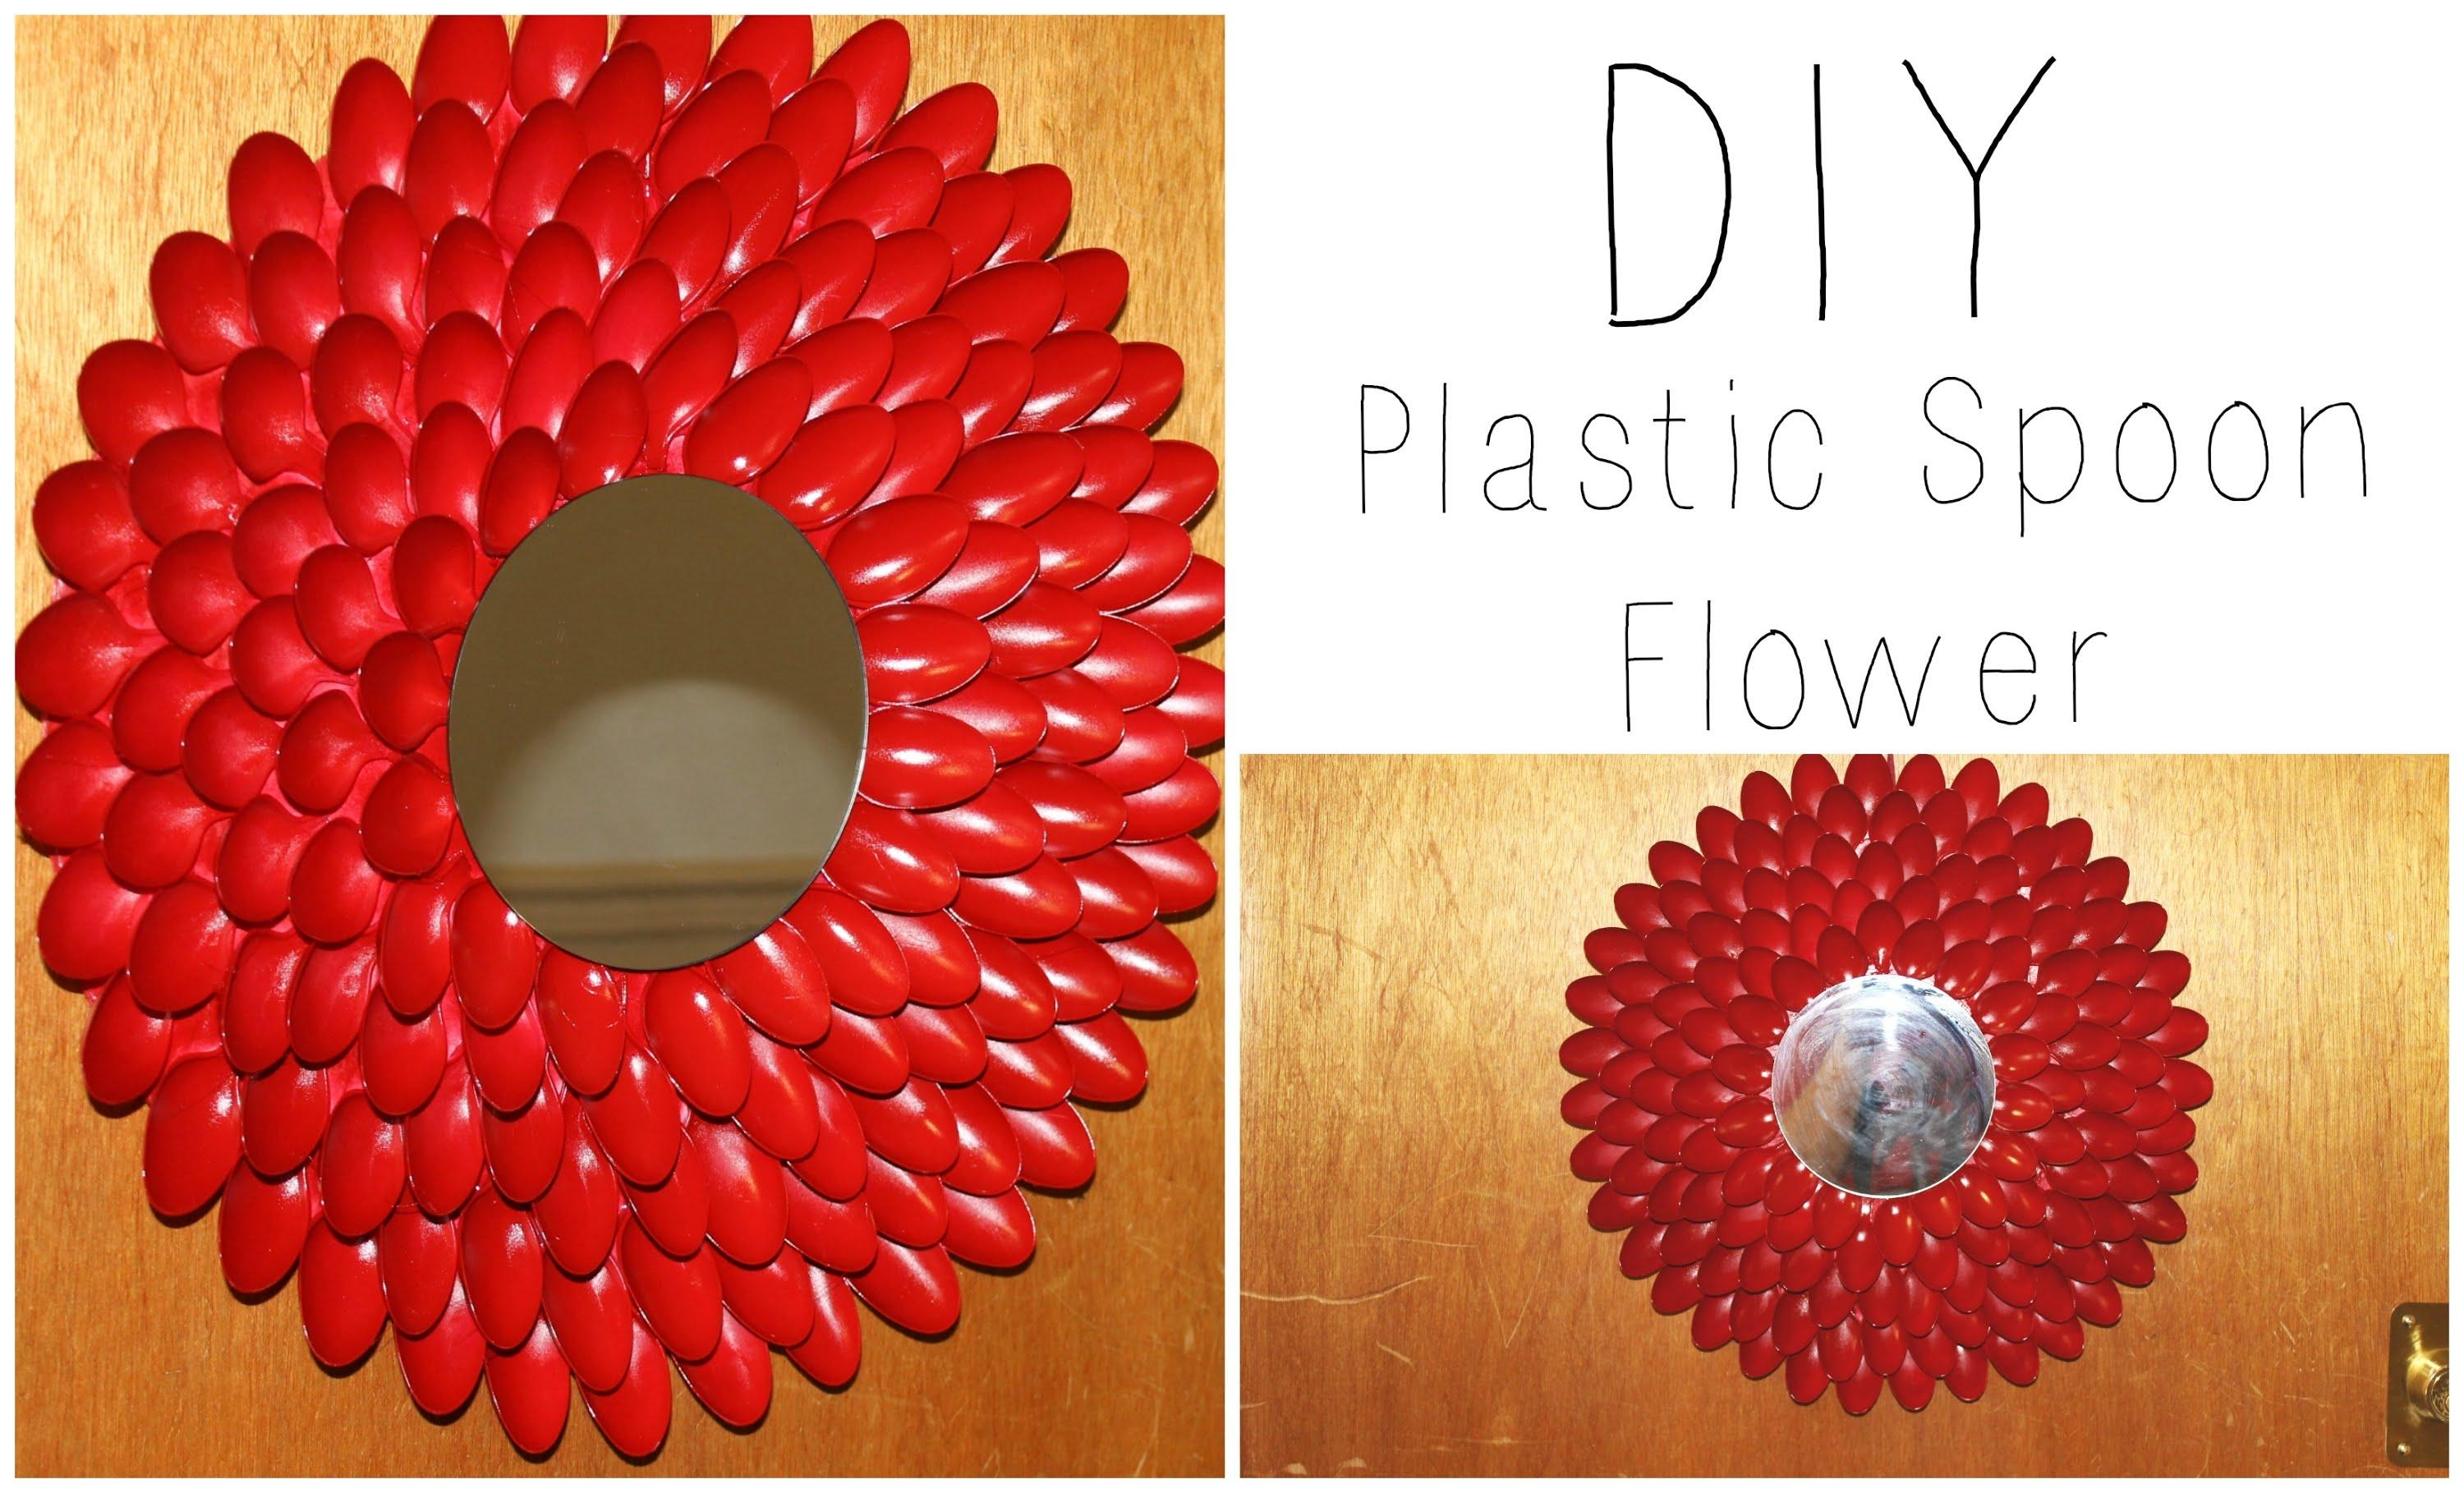 Diy: Plastic Spoon Flower Wall Hanging / Wreath ♡ {House Decor Within Plastic Spoon Wall Art (View 2 of 20)